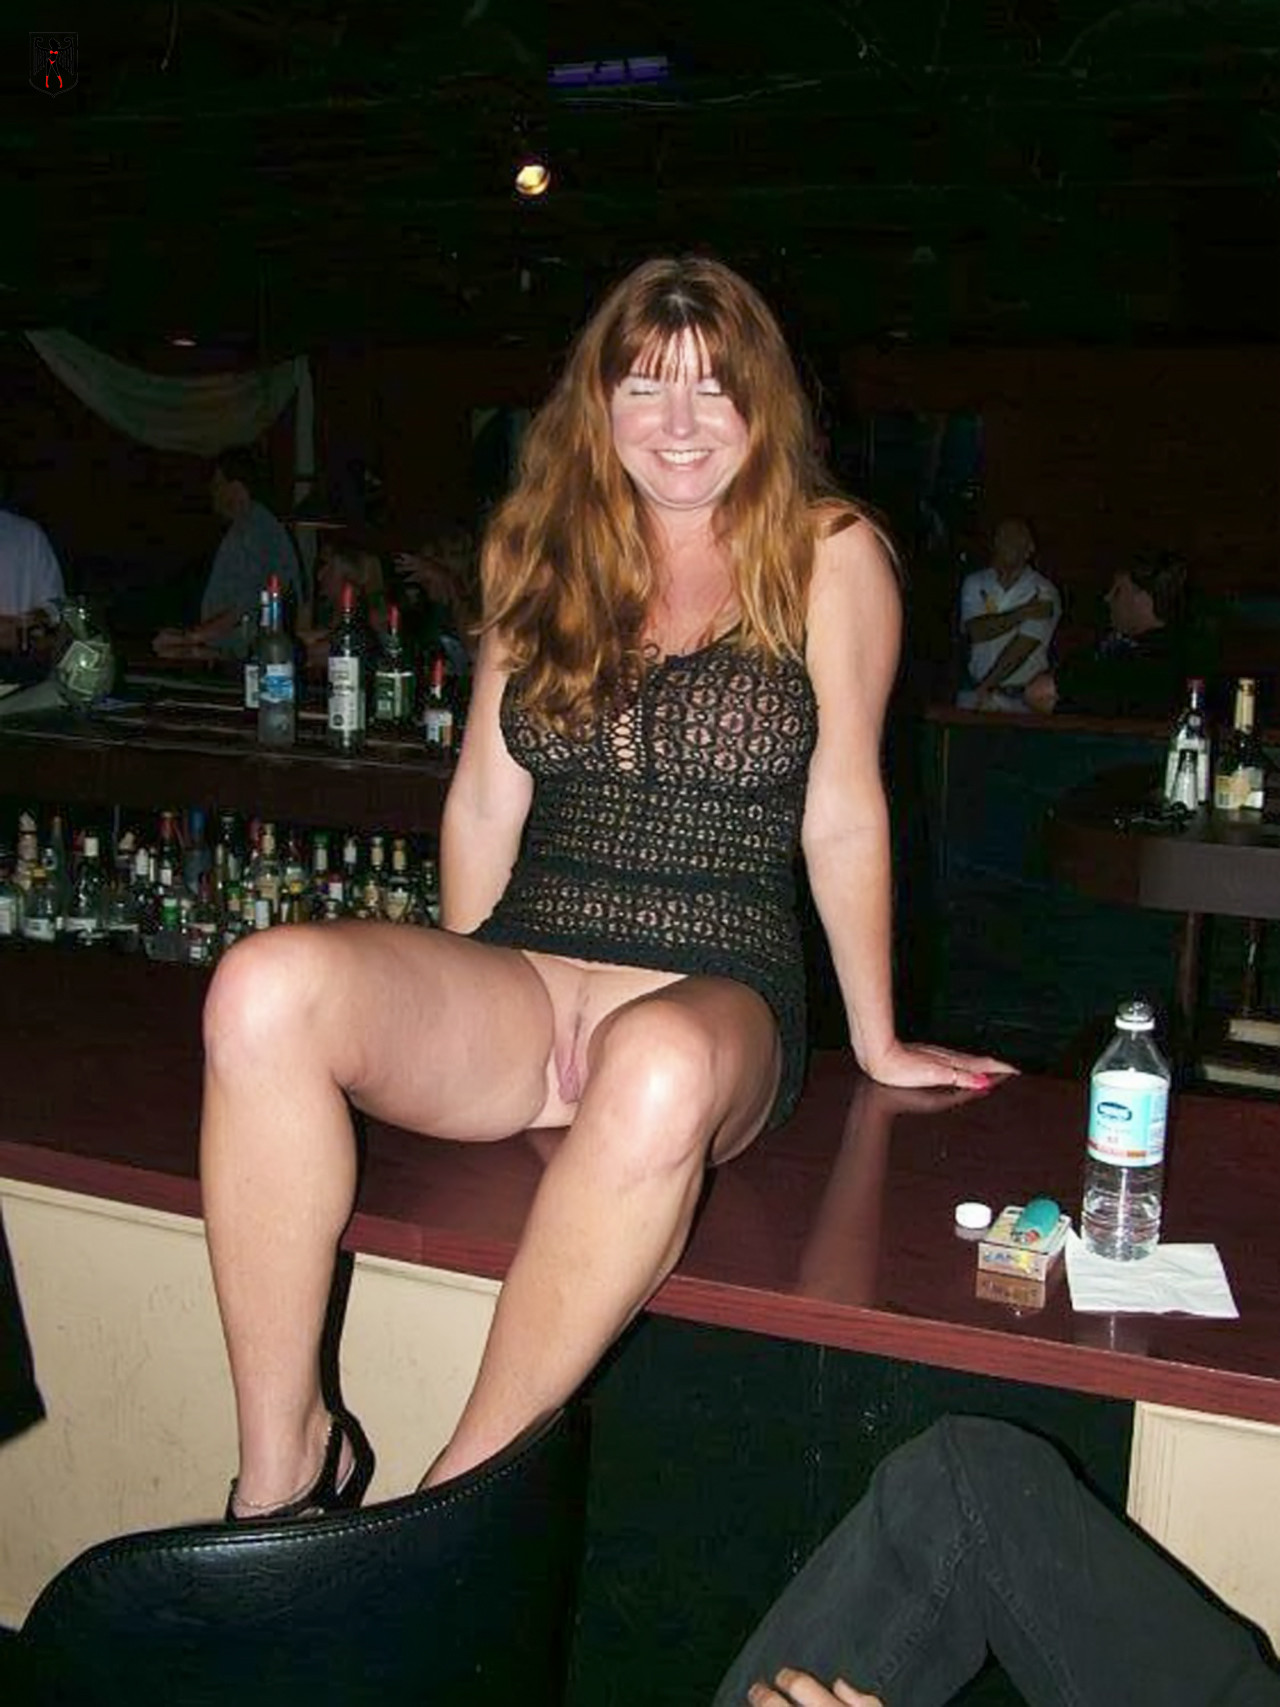 Milf sitting on a bar table in a short dress and showing her bottomless pussy